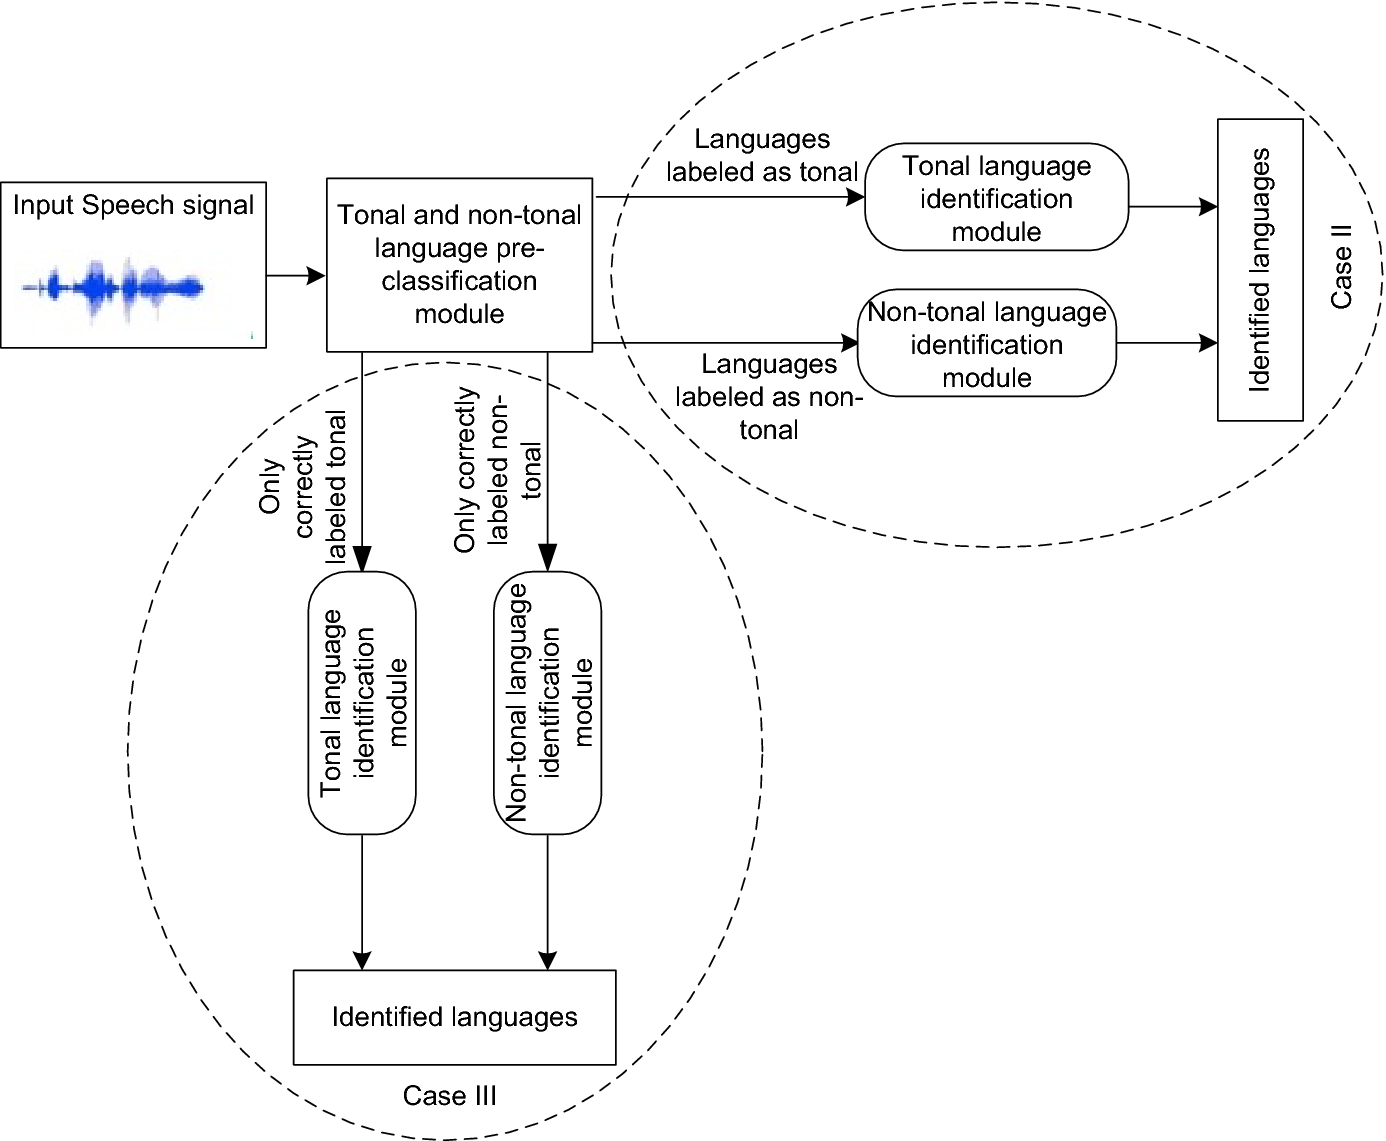 A Pre-classification-Based Language Identification for Northeast